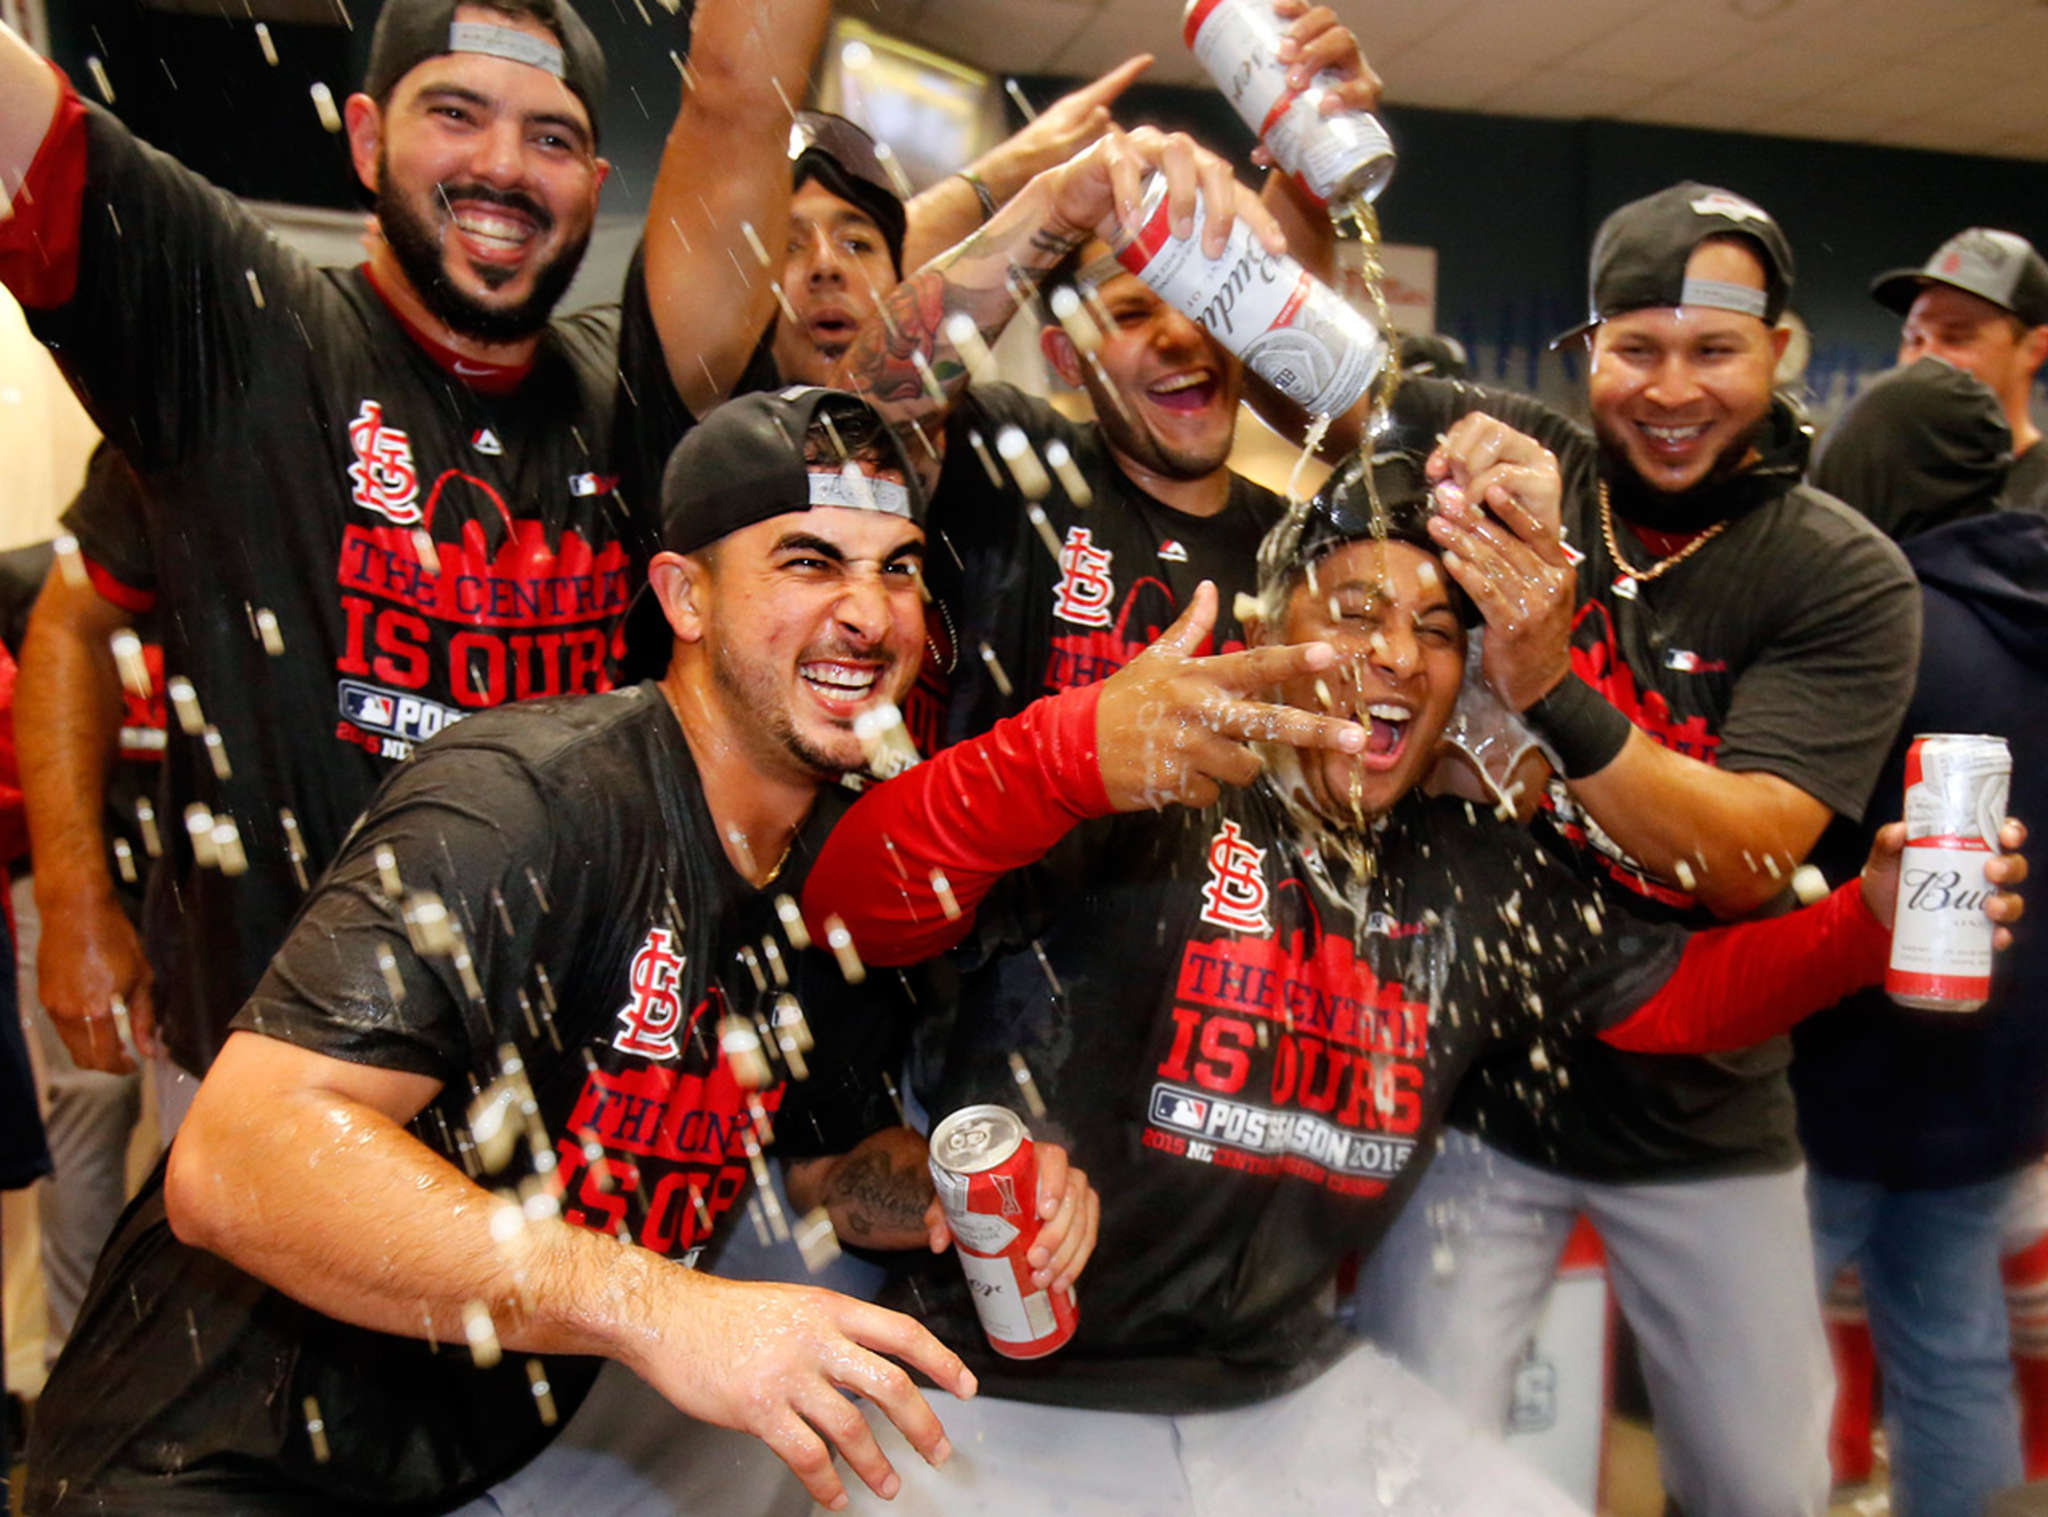 The Cardinals, celebrating their divisional title this year, redeemed themselves in our hearts by popping the beer tabs instead of the Champagne corks. But they´re still all wet.